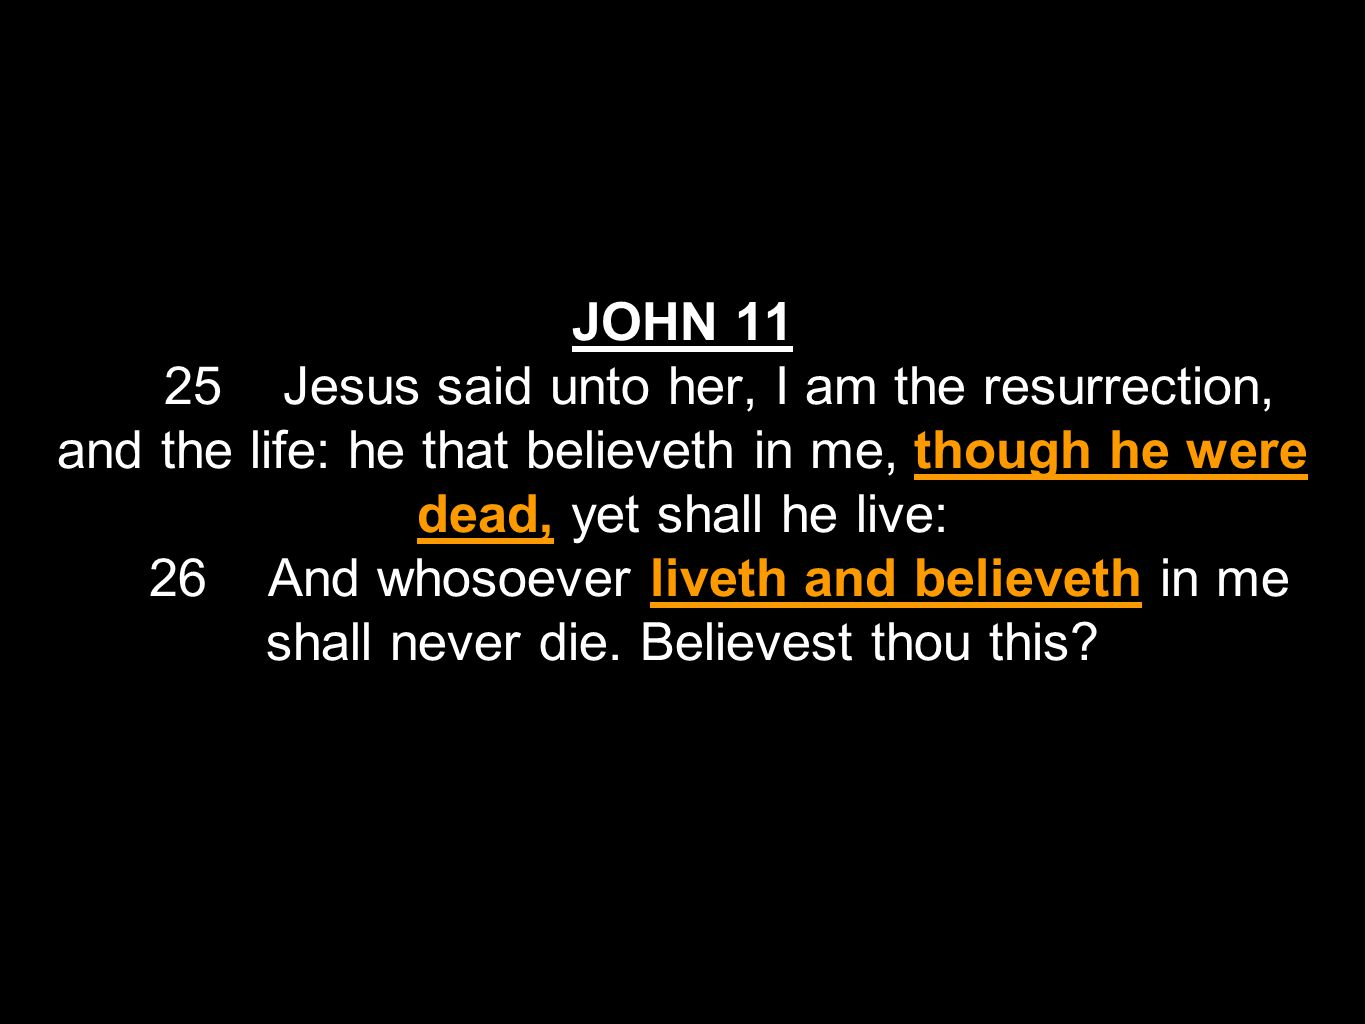 JOHN 11 25 Jesus said unto her, I am the resurrection, and the life: he that believeth in me, though he were dead, yet shall he live: 26 And whosoever liveth and believeth in me shall never die.